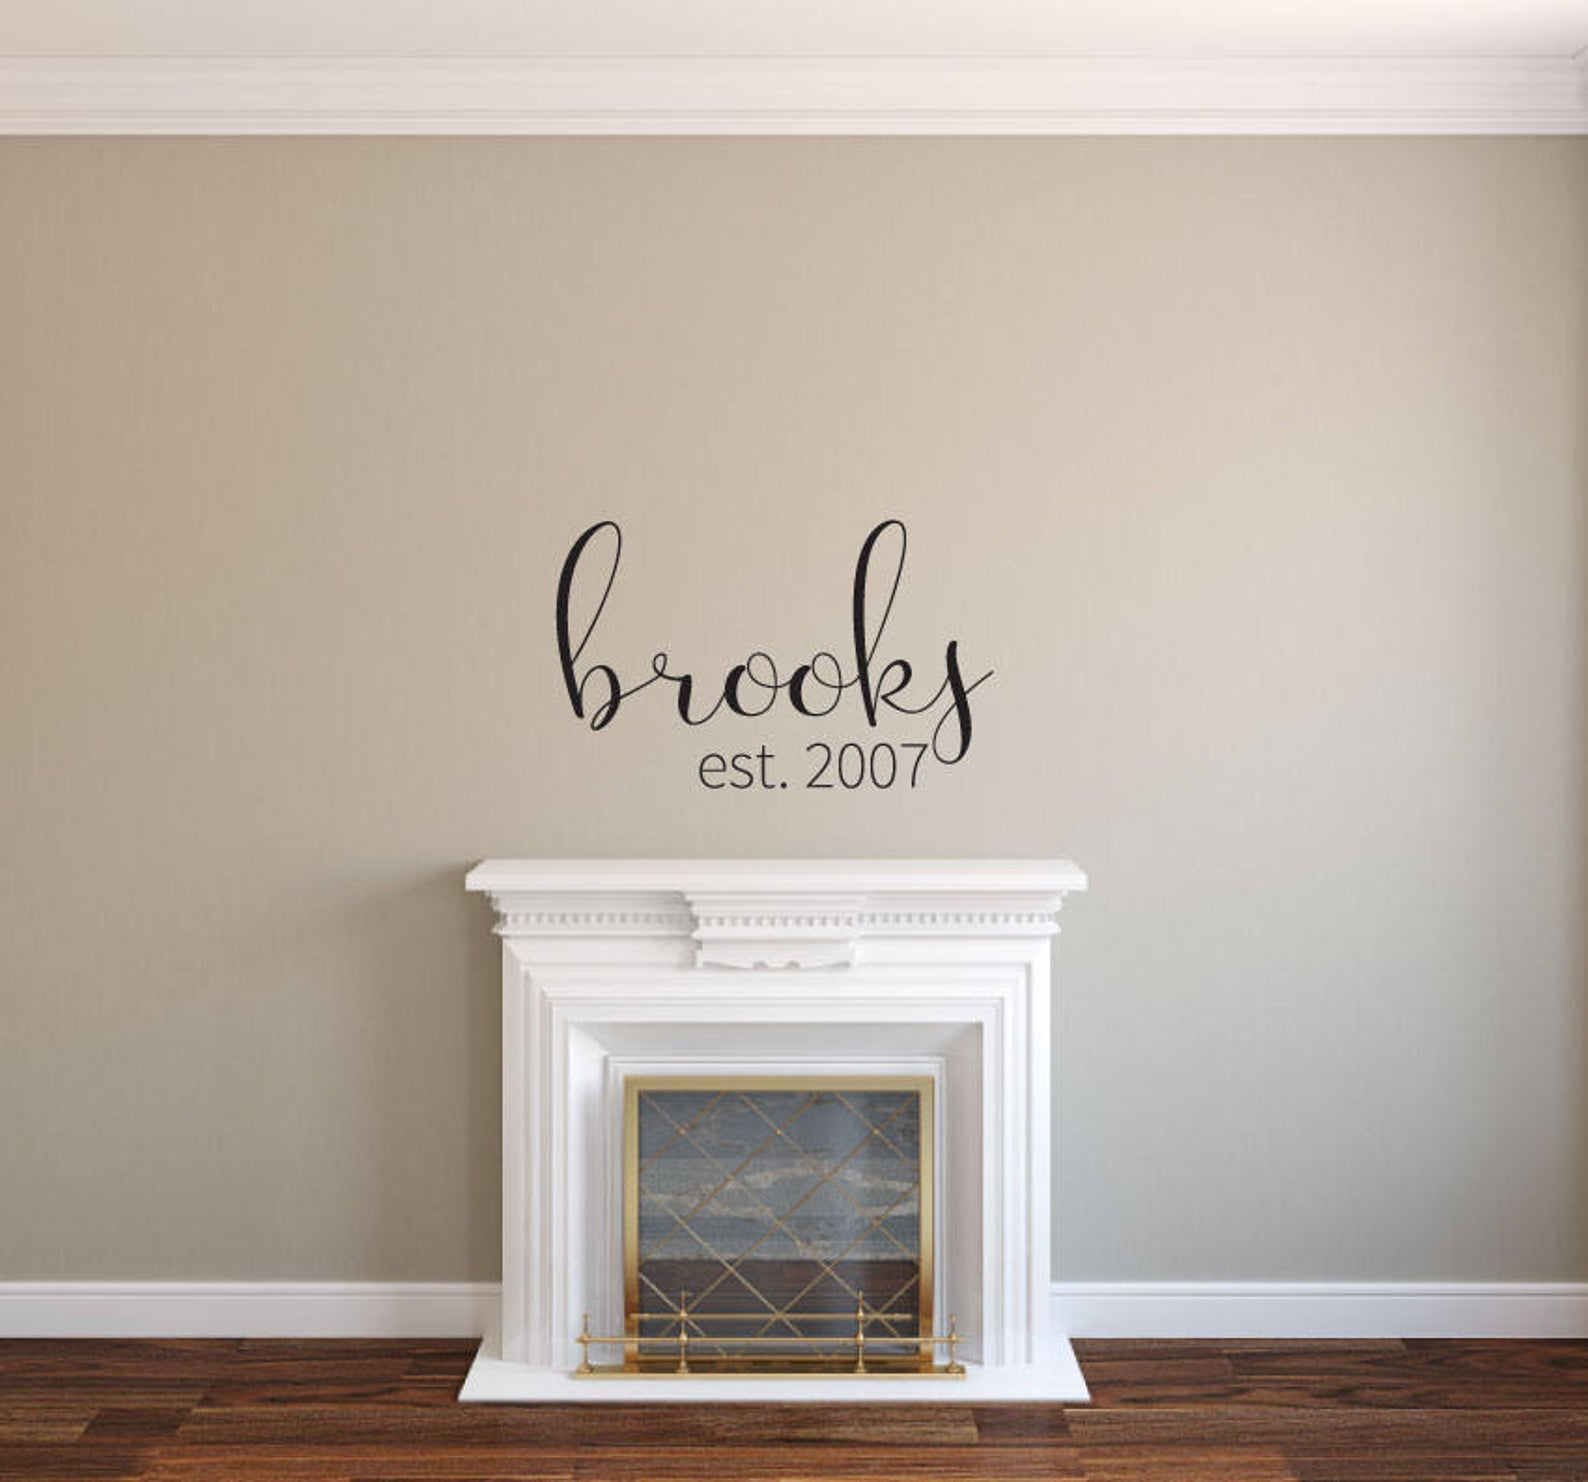 Custom Family Name/Established Year - Vinyl Decal Wall Art Decor Sticker - Home Decor Bedroom Living Area House Warming Family Entry Hall